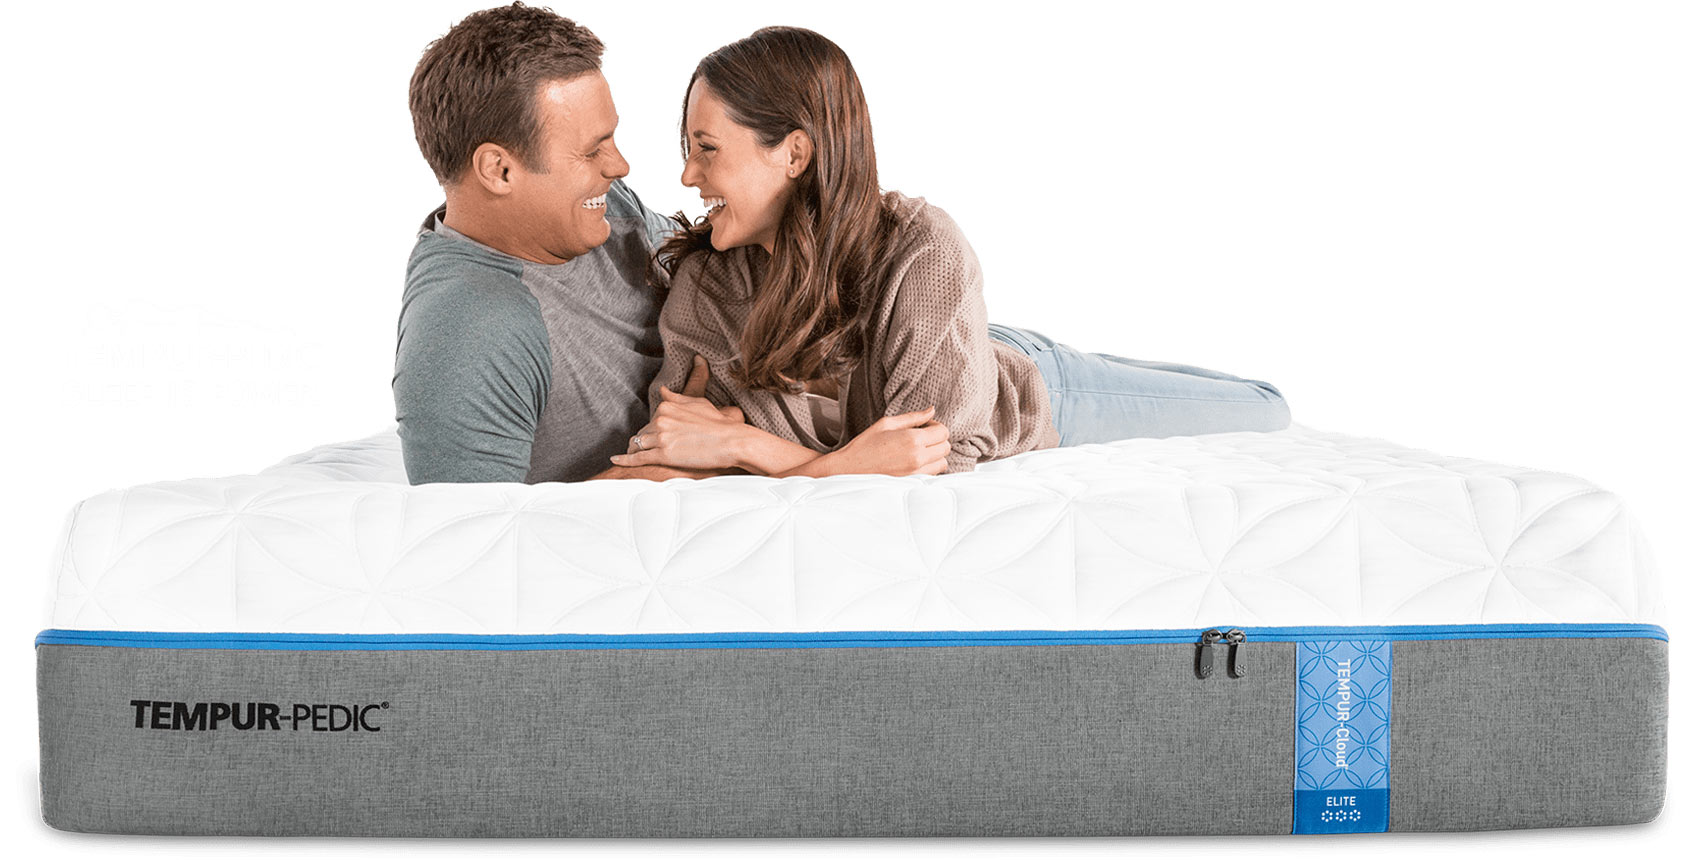 tempurpedic soft mattresses